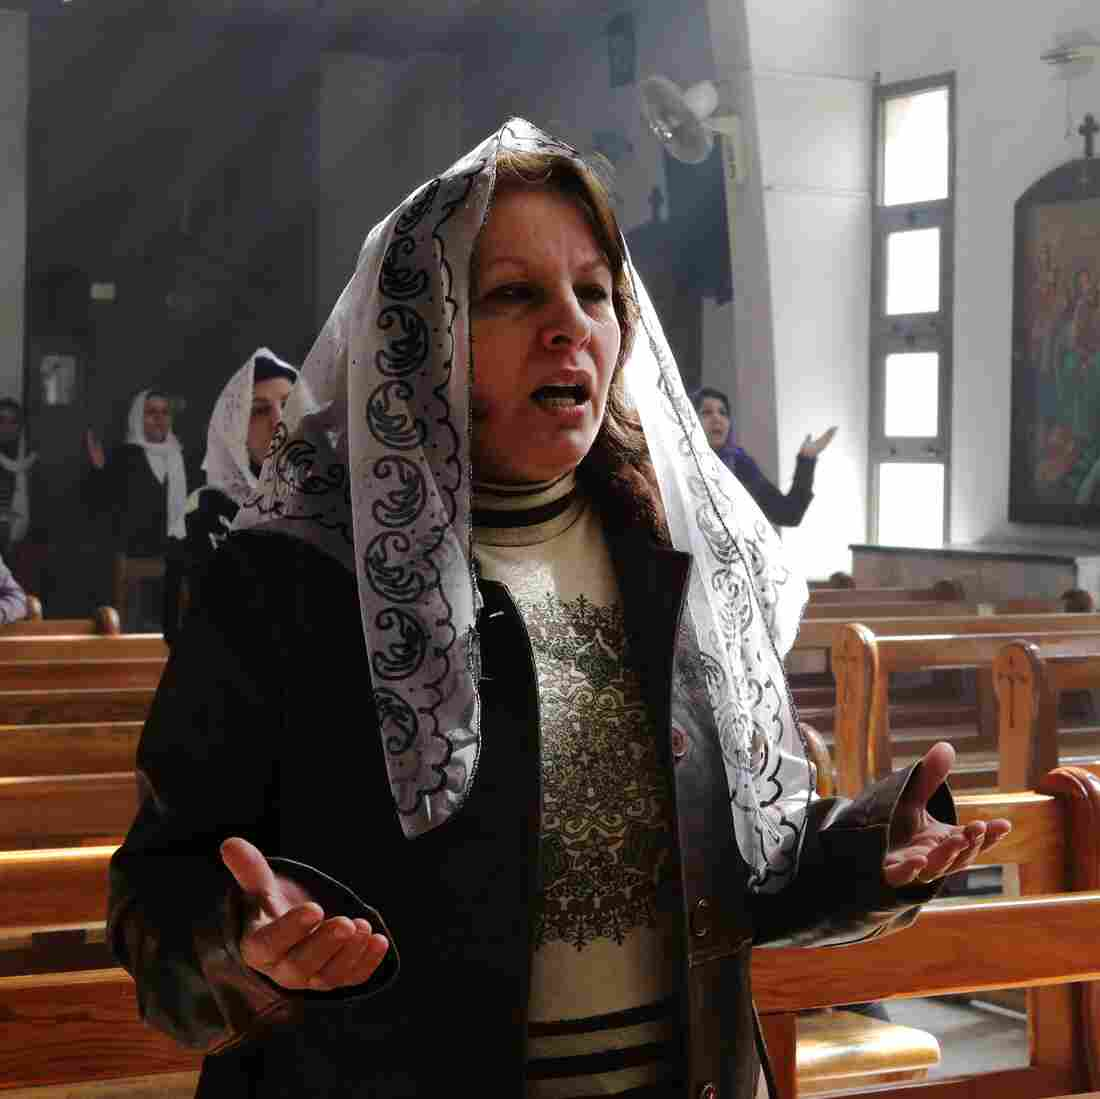 Assyrian Christians, who fled their homes because of attacks by the Islamic State, pray at a church on the outskirts of Damascus on March 1. Many minorities in Syria have tried to remain neutral in the conflict, but they often get caught up in the crossfire or are targeted by extremists.